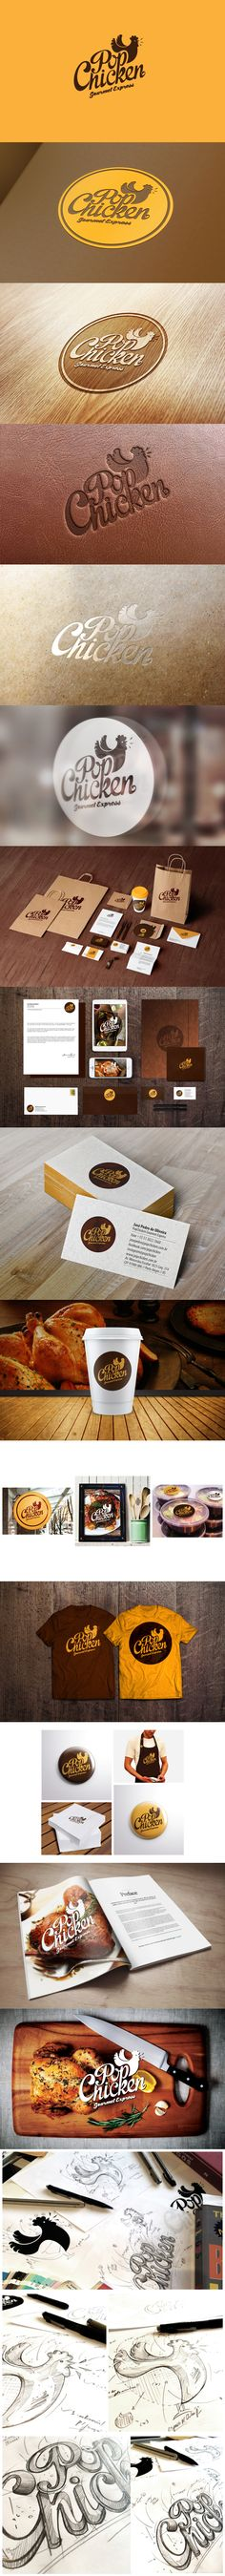 PopChicken Gourmet Express // IdentityYou can find Identity branding and more on our website. Chicken Brands, Chicken Logo, Brand Identity Design, Corporate Design, Corporate Identity, Brand Design, Visual Identity, Logo Restaurant, 2 Logo